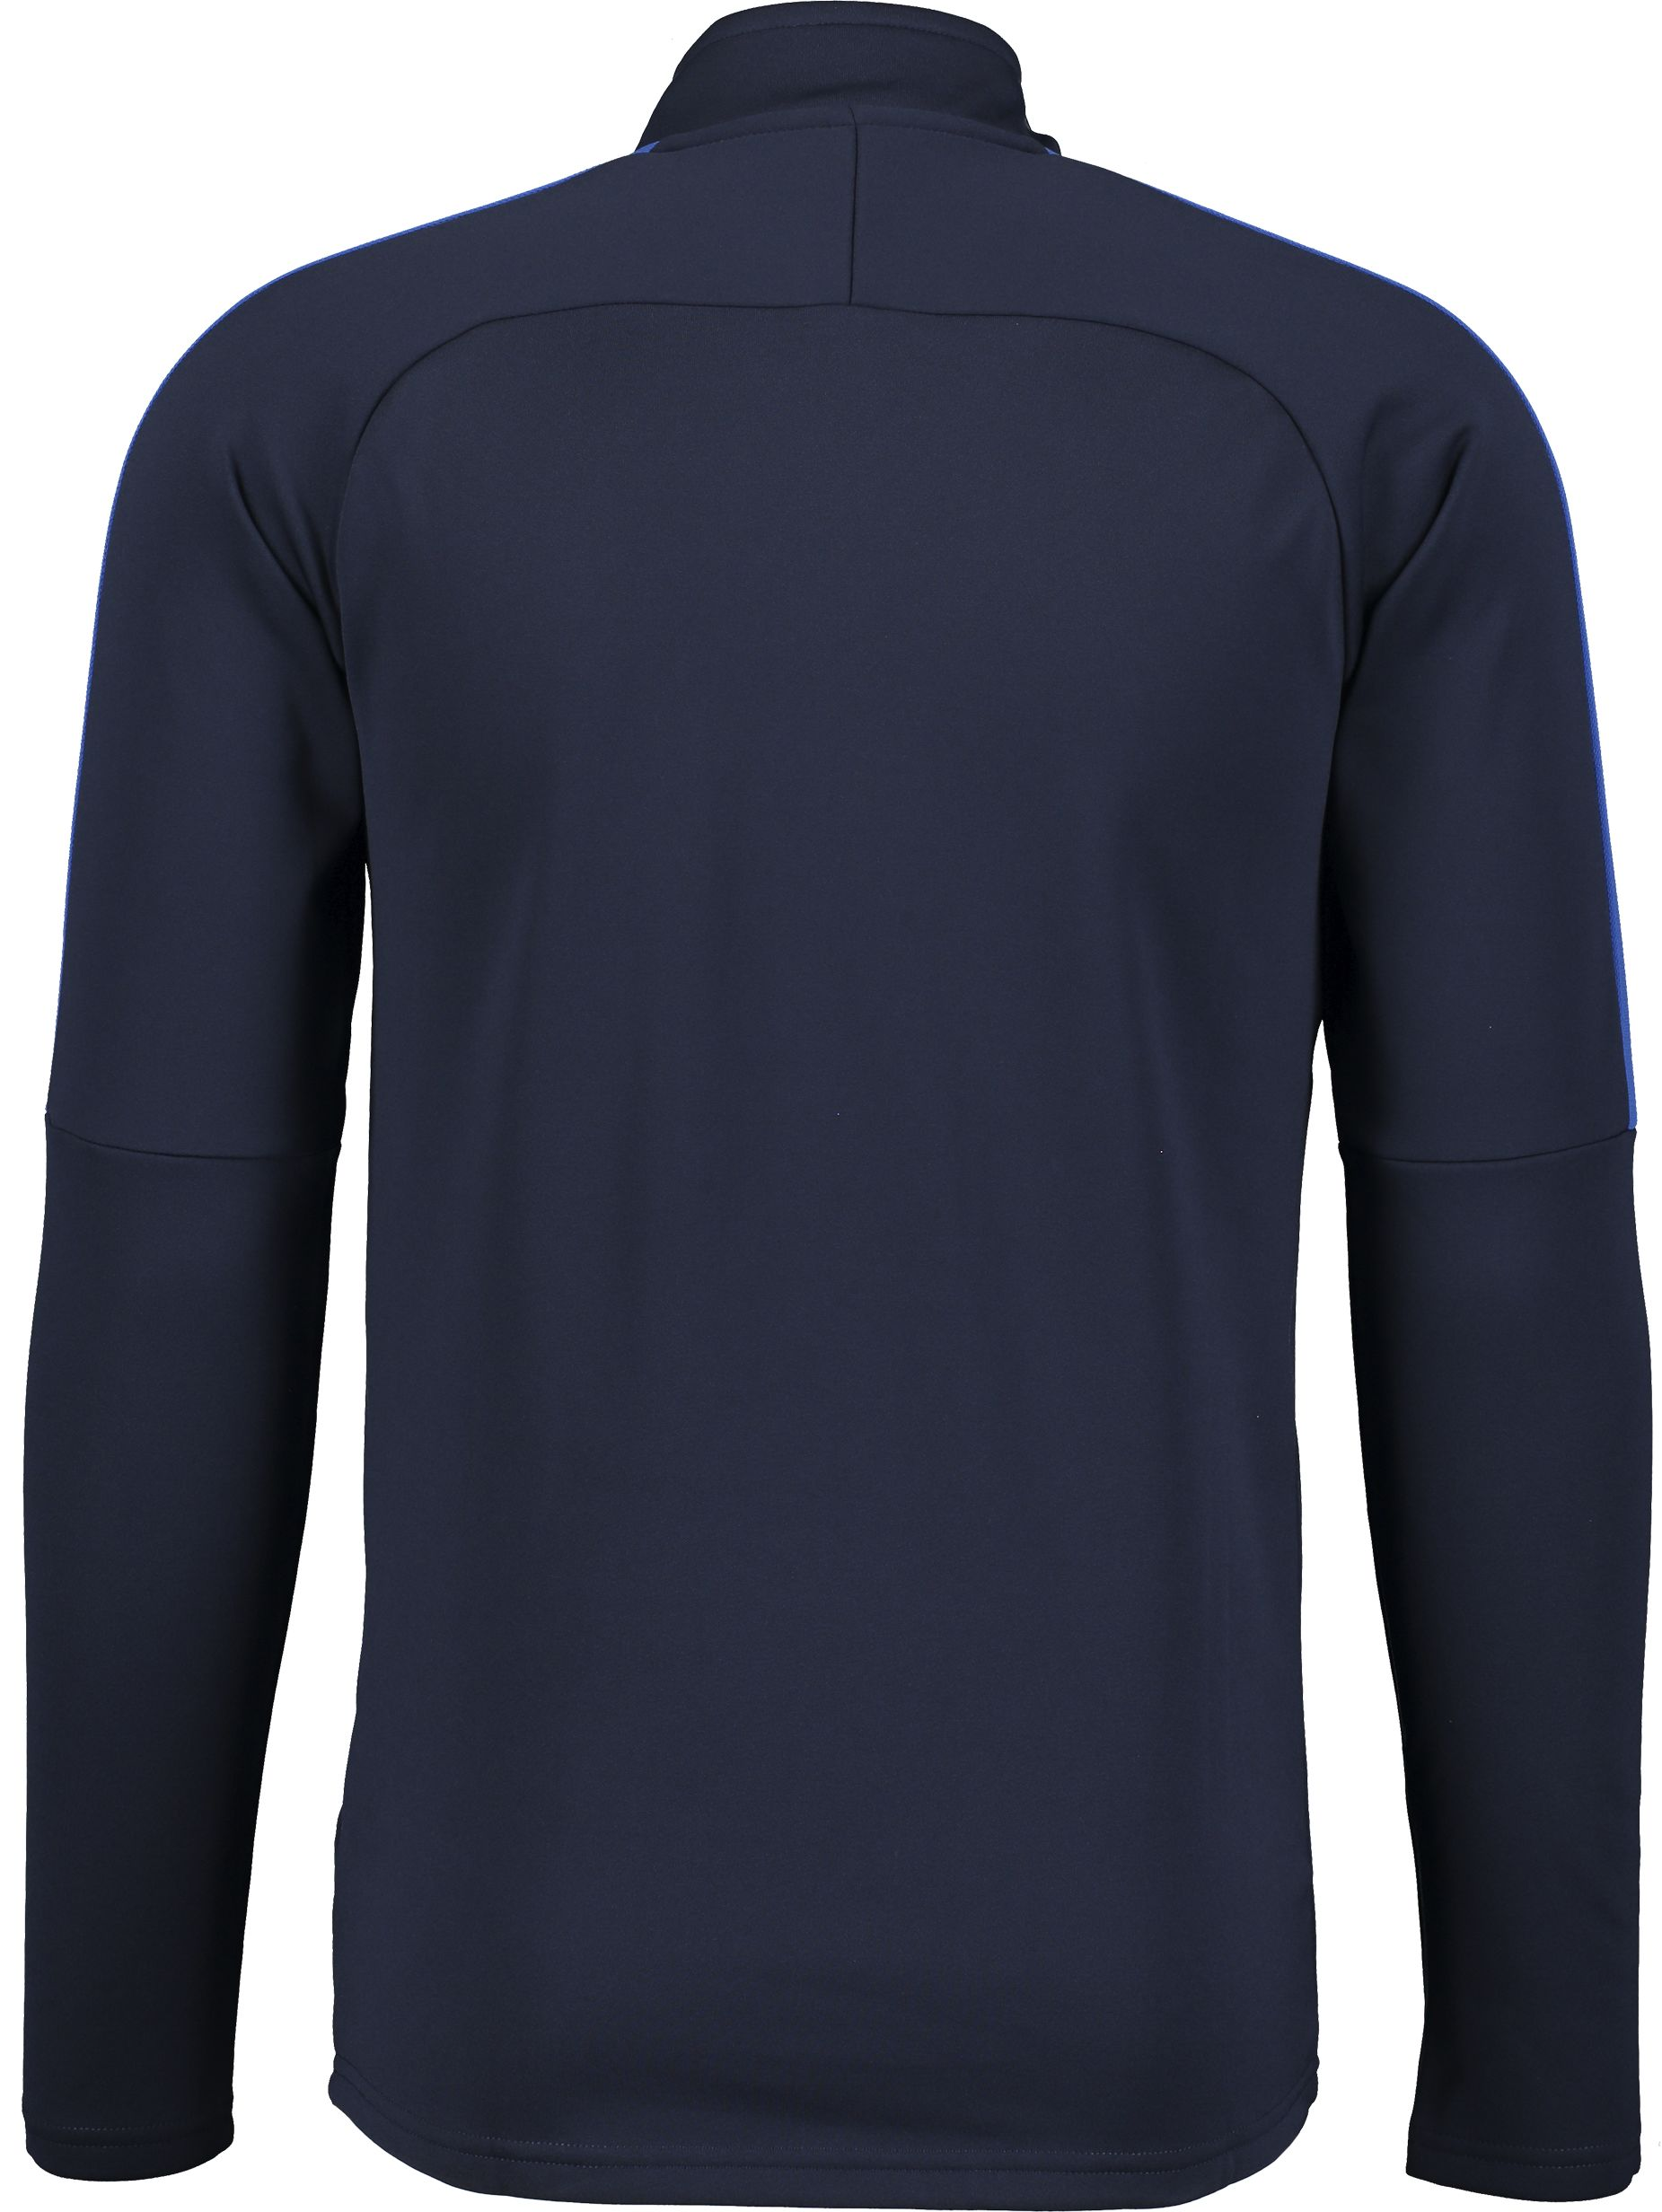 257927104105, ACADEMY 18 DRILL TOP, NIKE, Detail